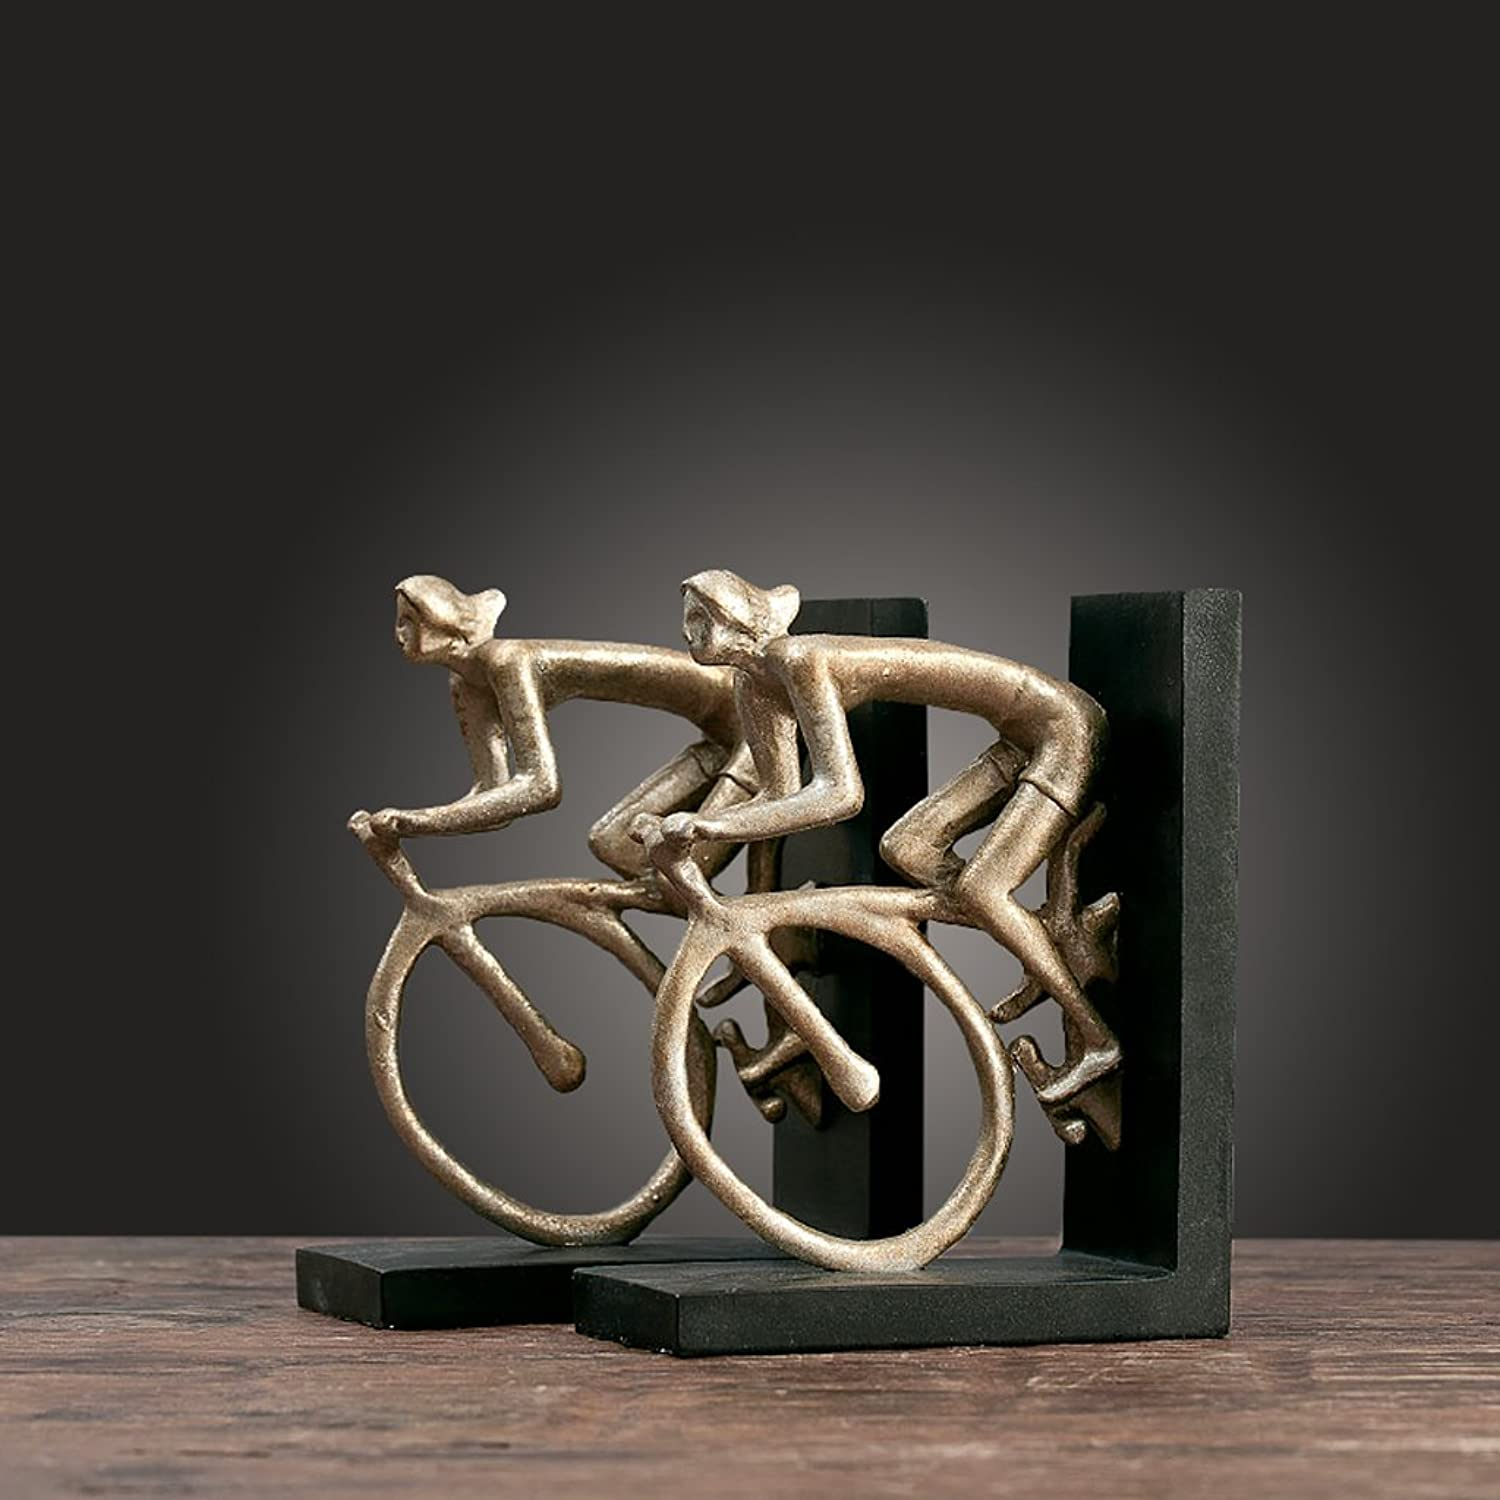 American Retro Abstract Bicycle Resin Bookshelf Home Decorations Wine Cabinet Indoor Living Room Coffee Table TV Cabinet Office Desk Wedding Gifts